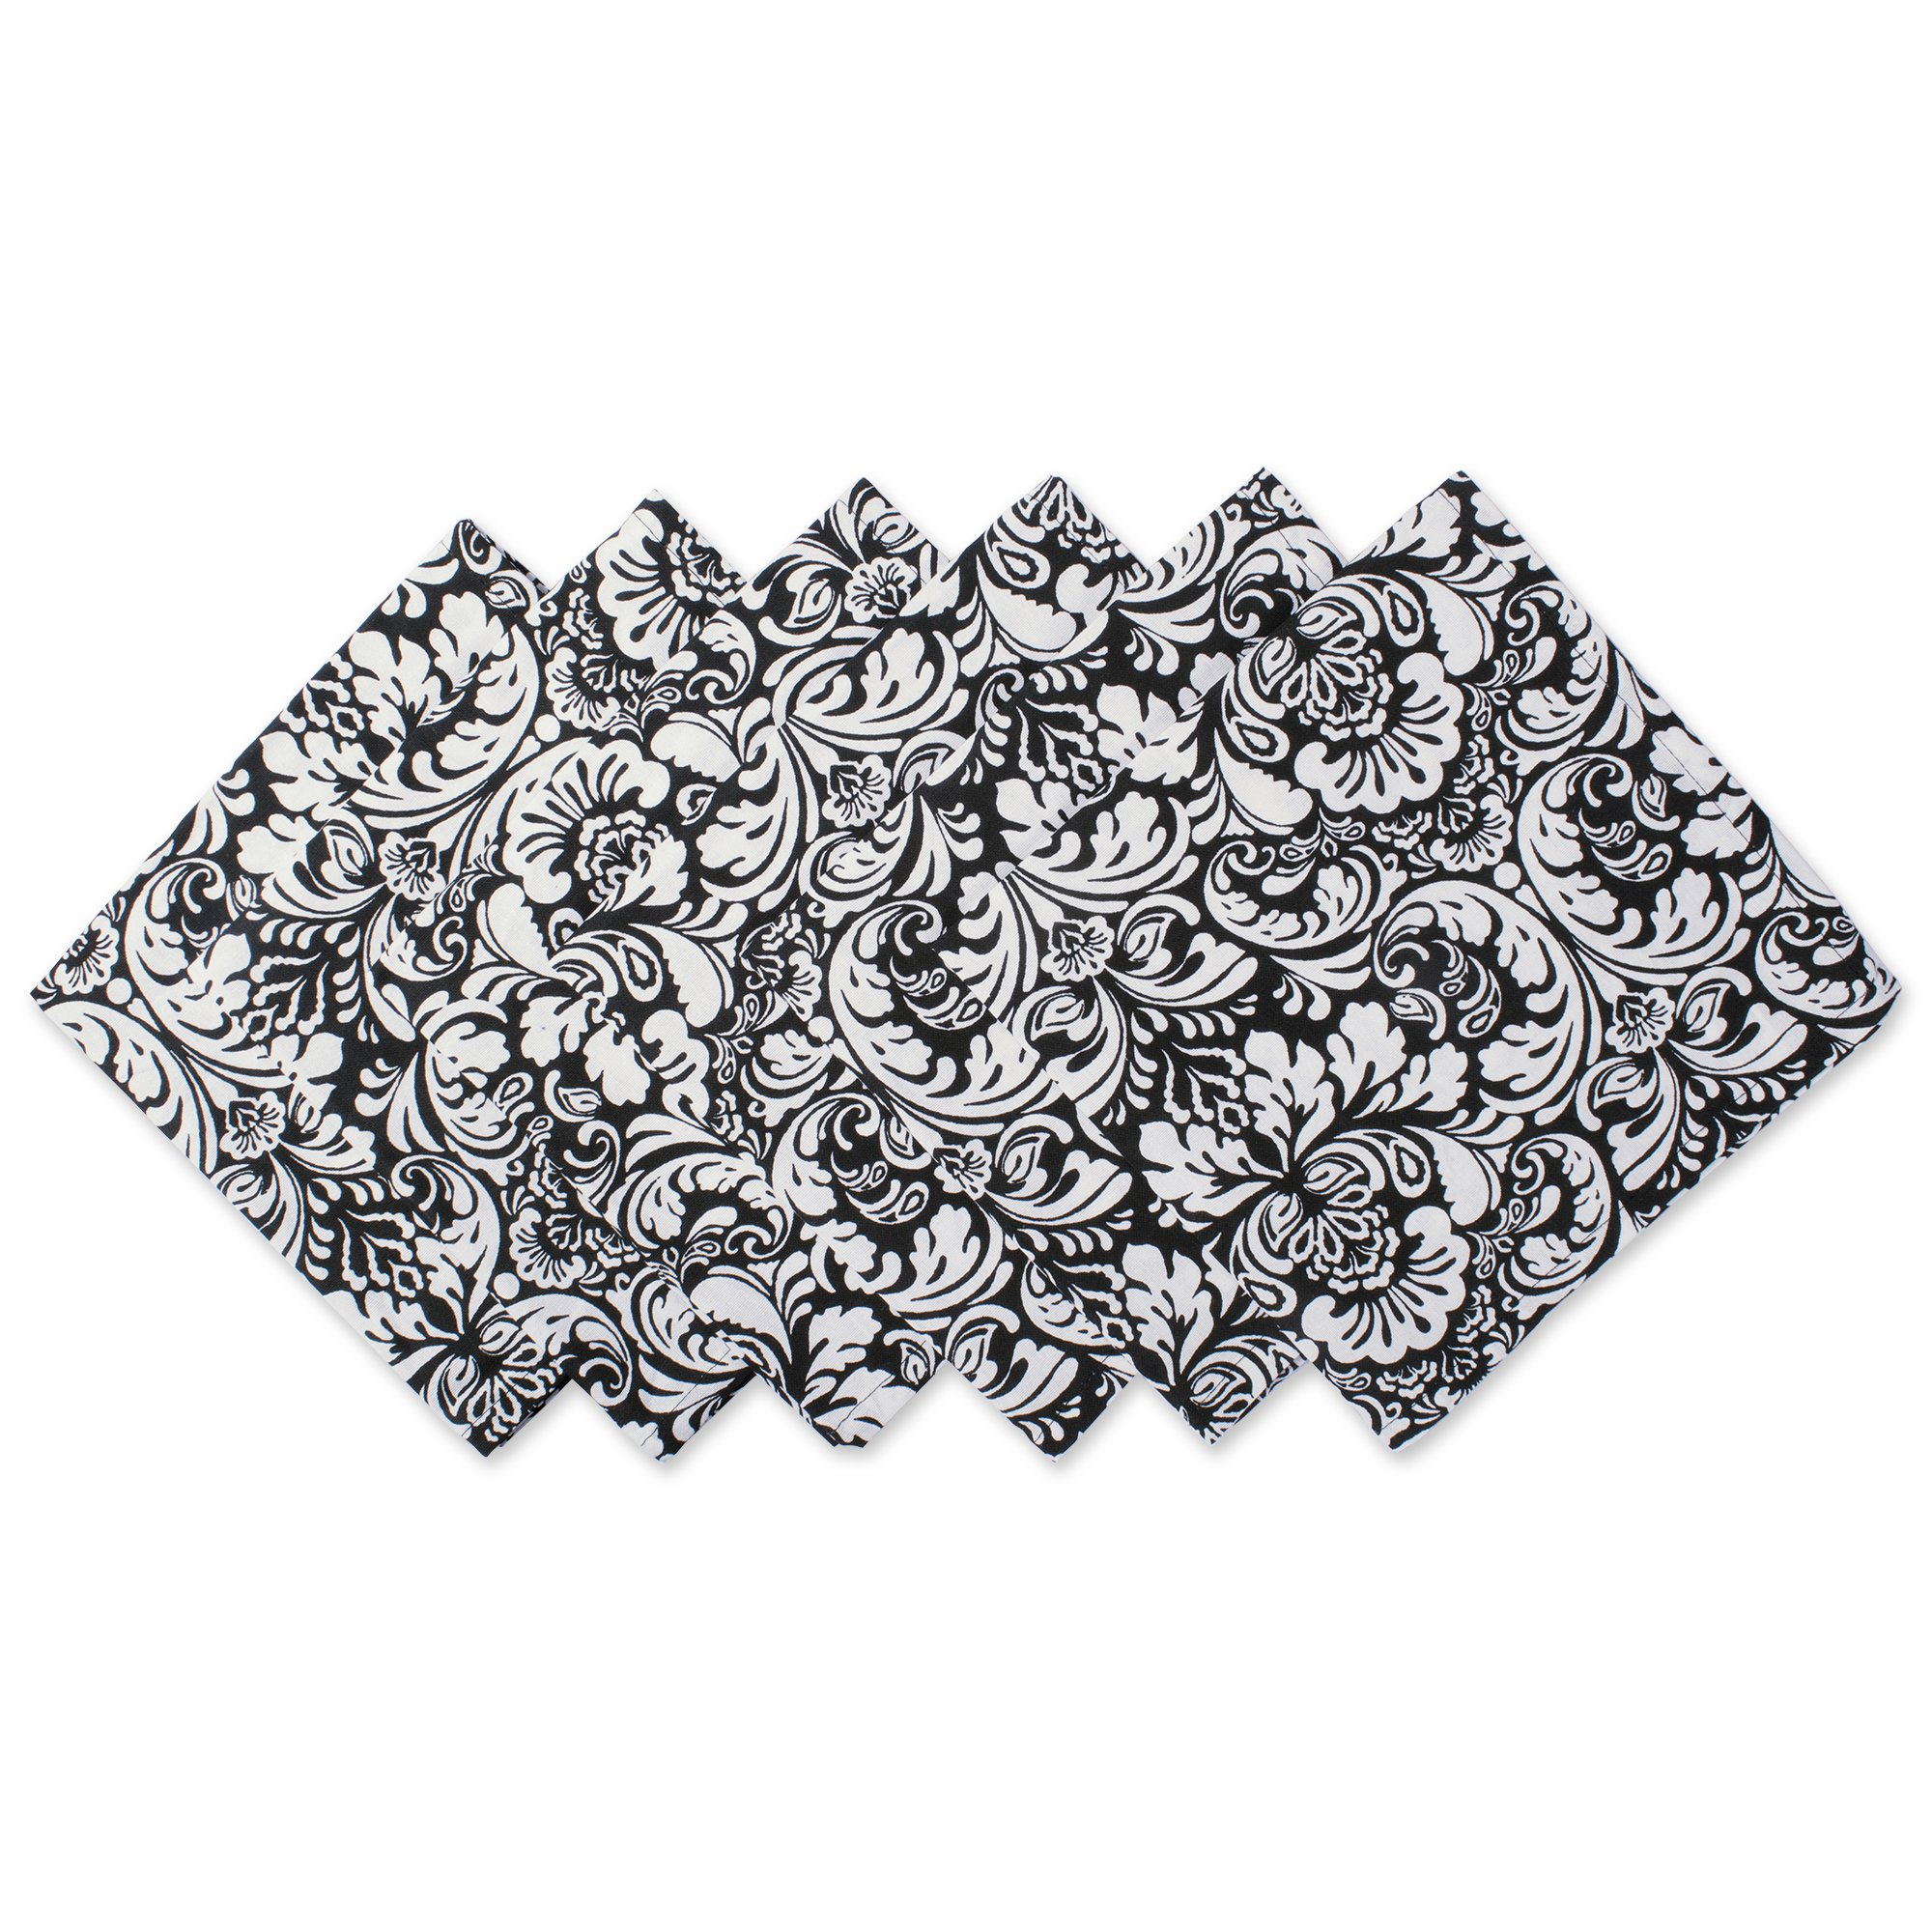 DII 100% Cotton, Oversized Basic 20x20'' Damask Napkin For Holidays, Buffets, Parties, Special Occasions, or Everyday Use - Set of 6, Black